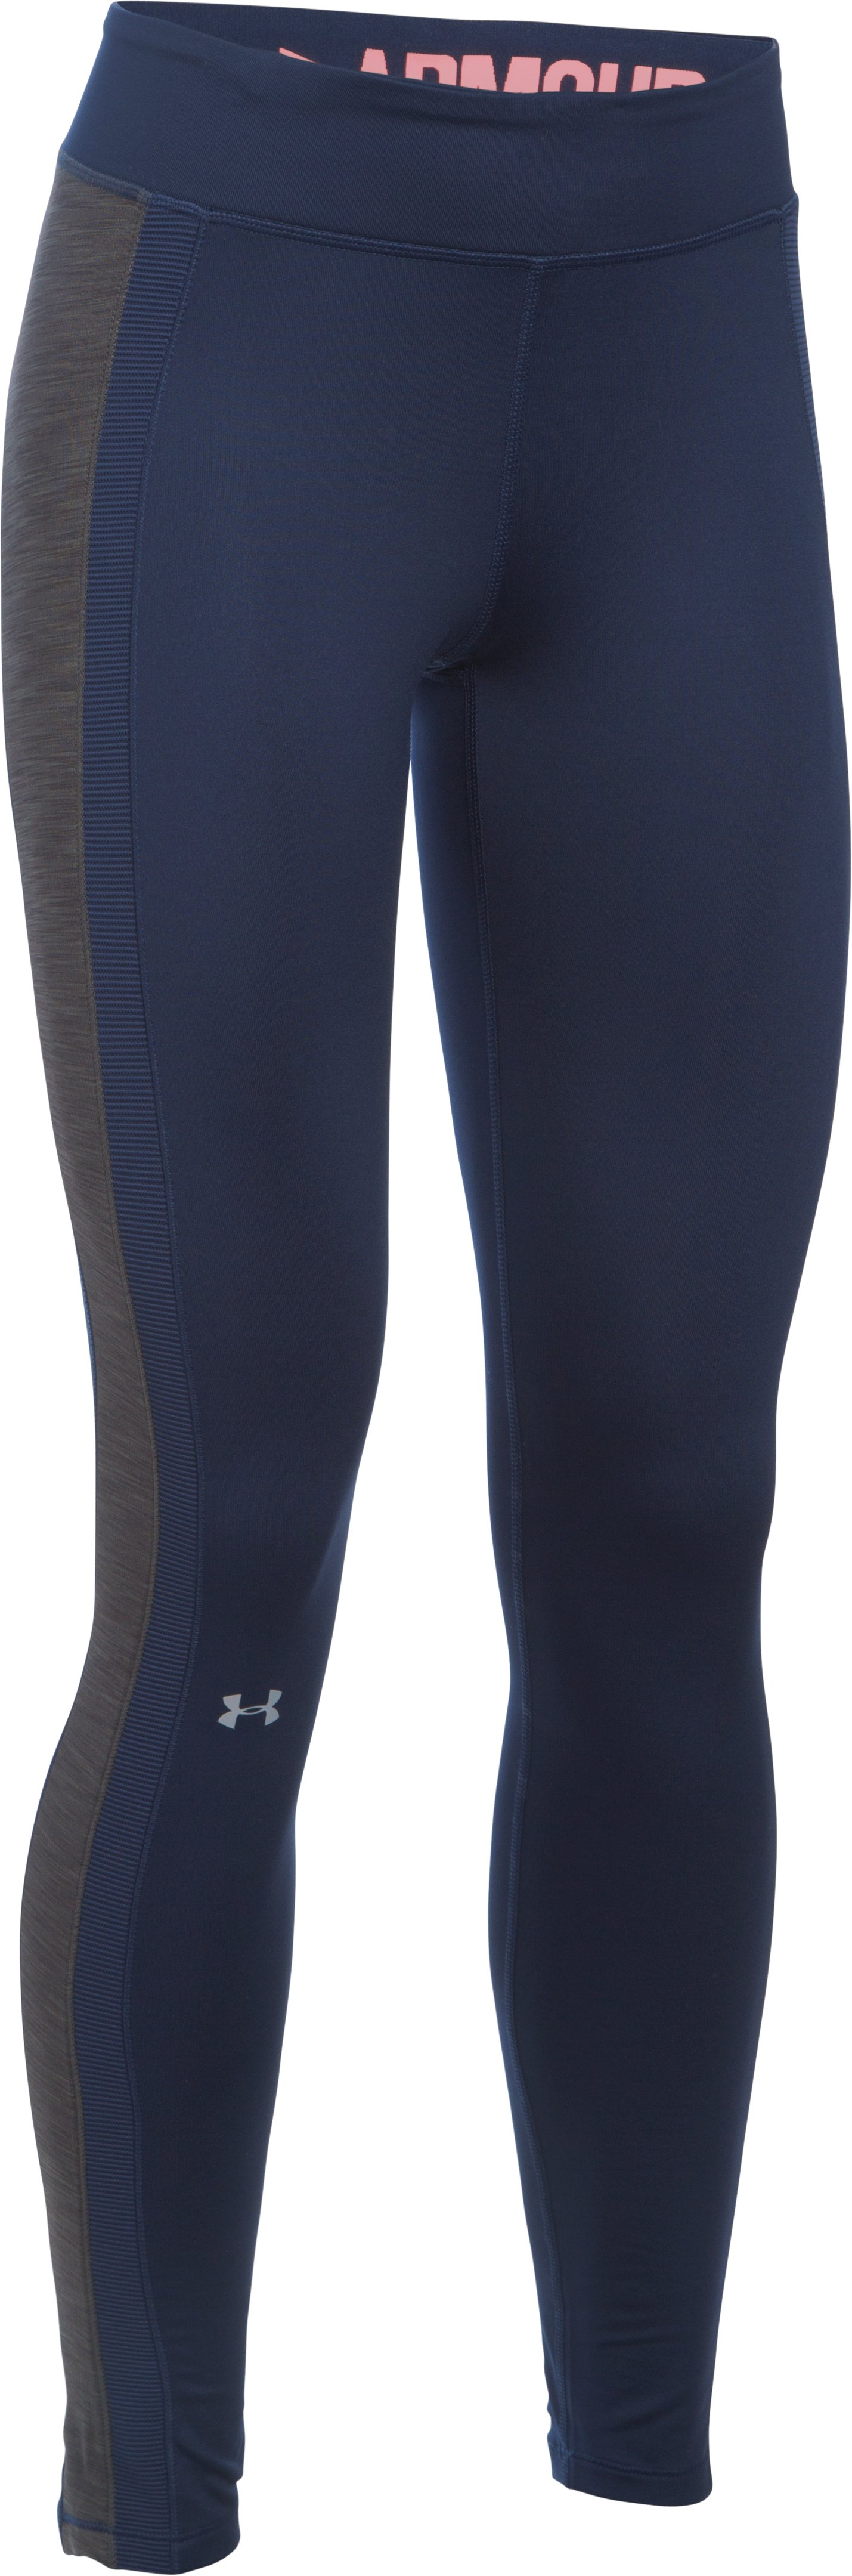 Women's UA ColdGear® Leggings, Midnight Navy